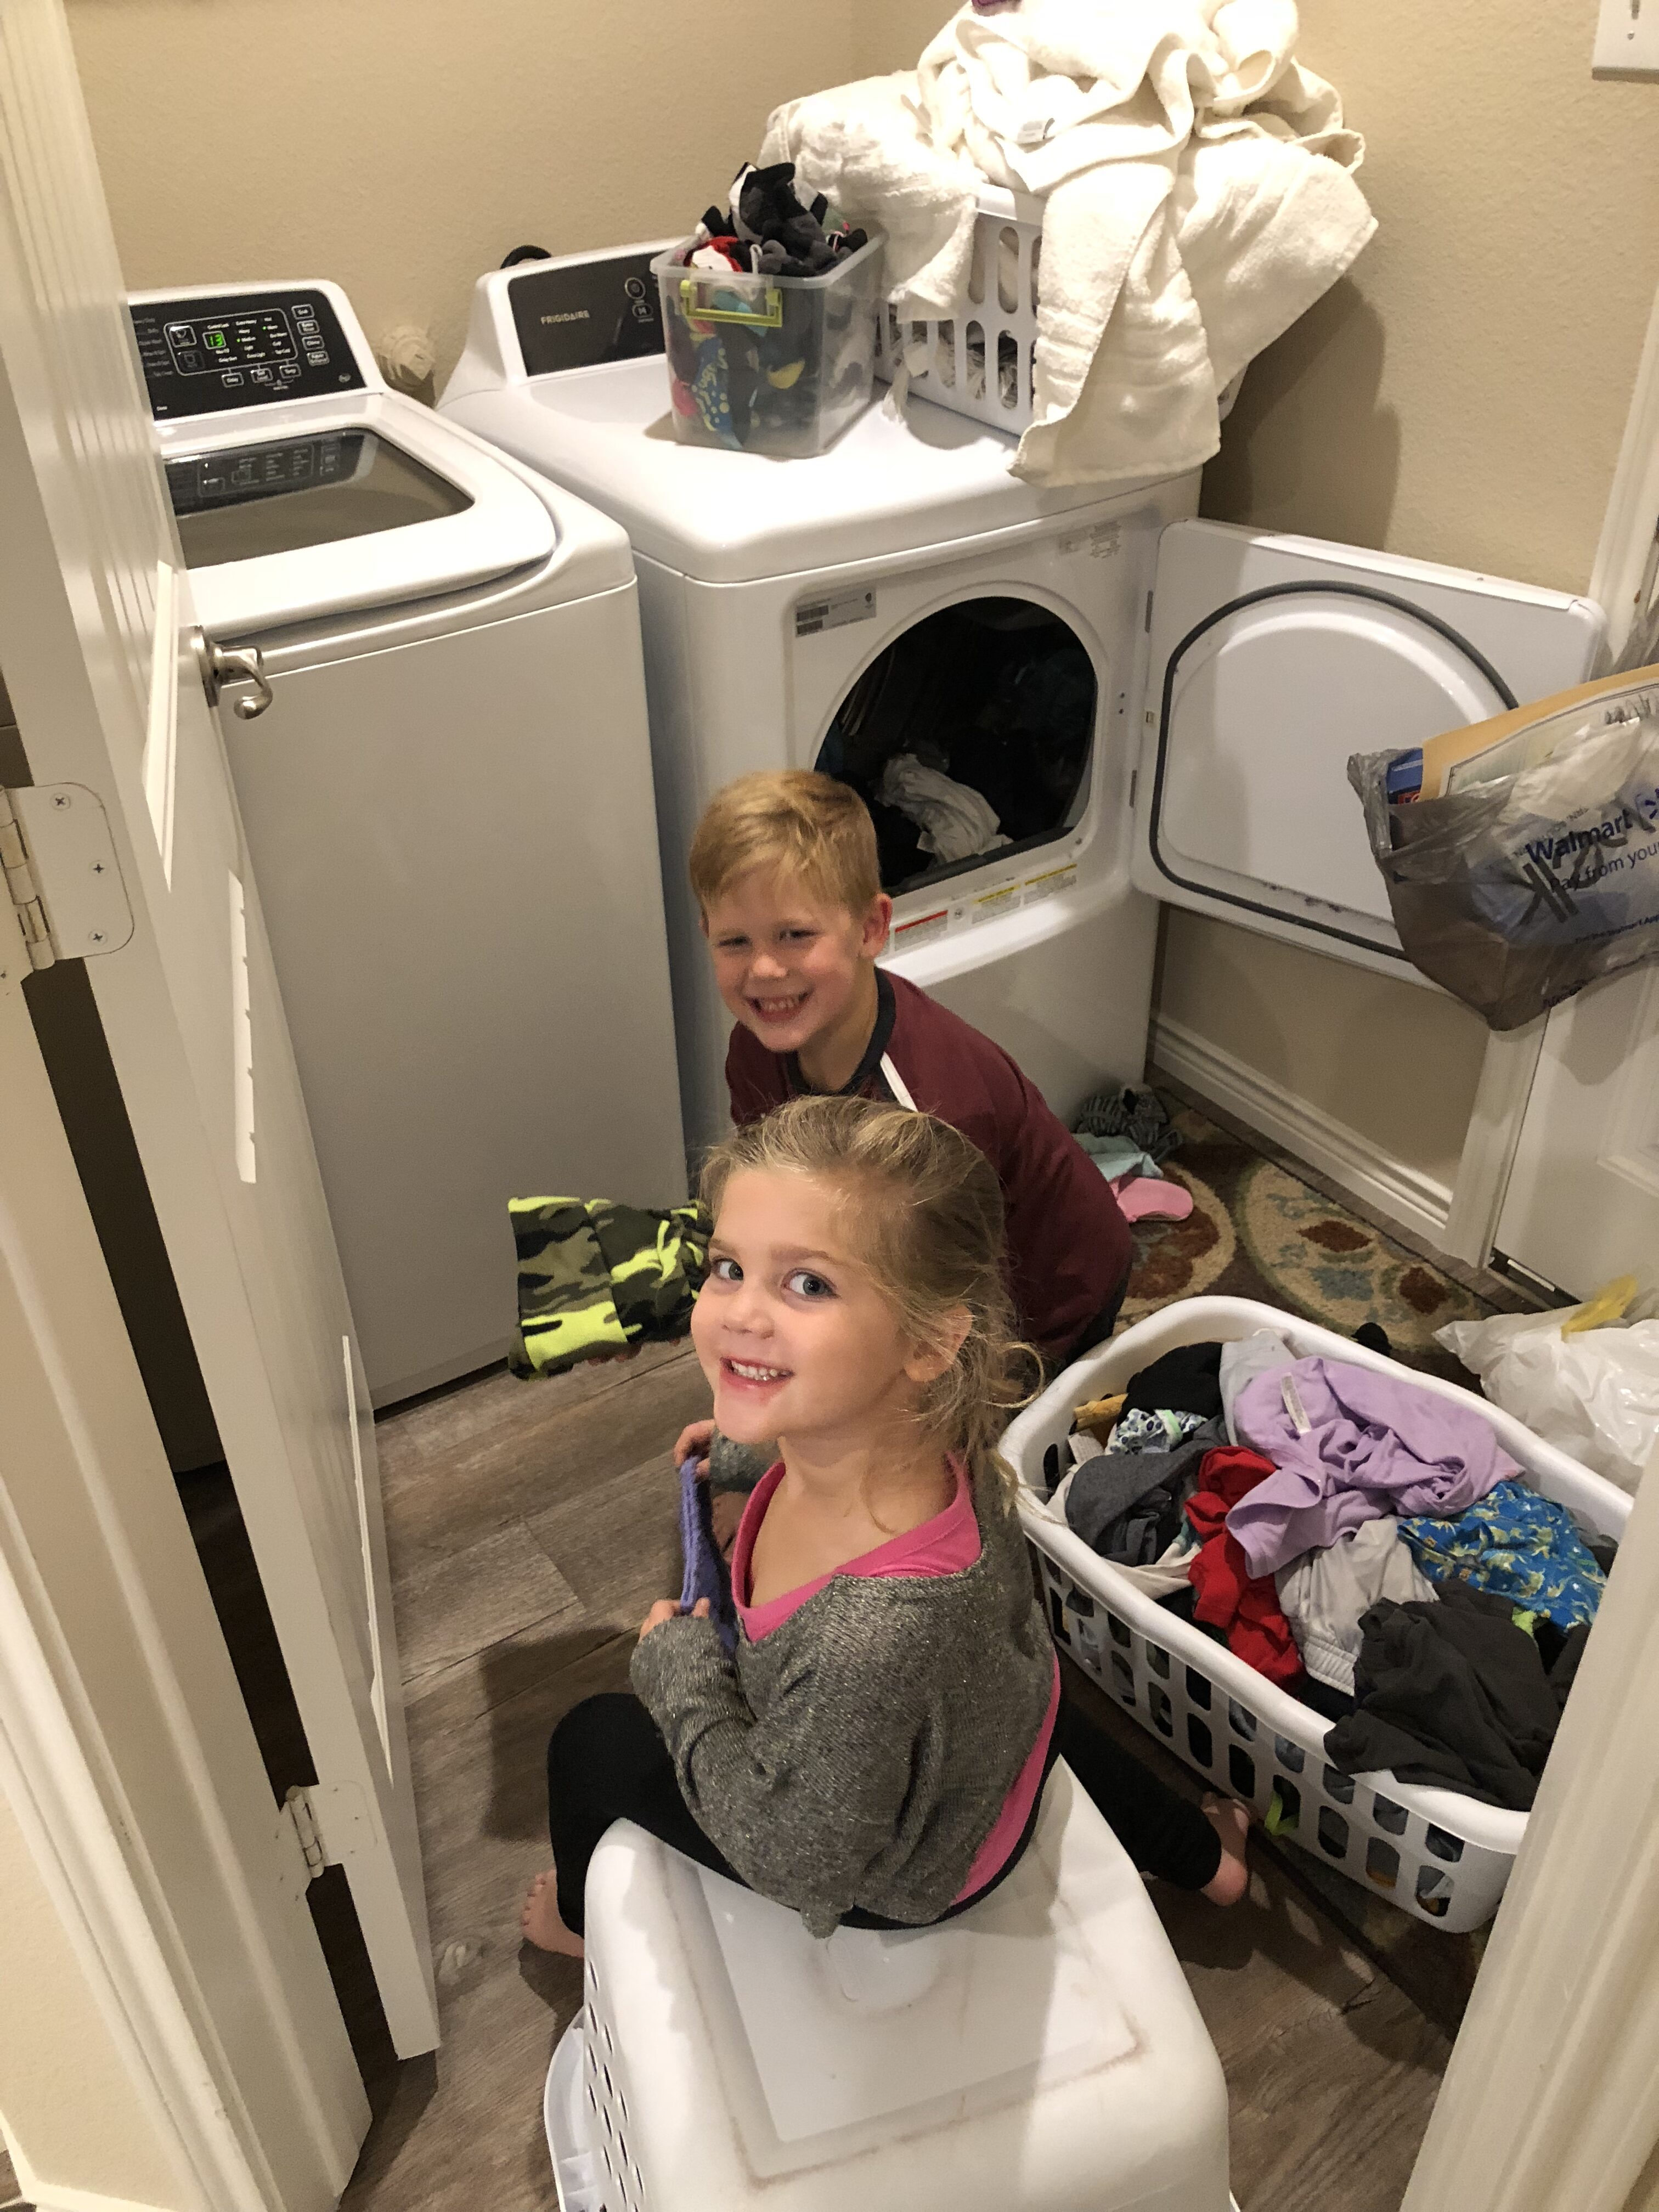 Kiddos in the trenches of chores